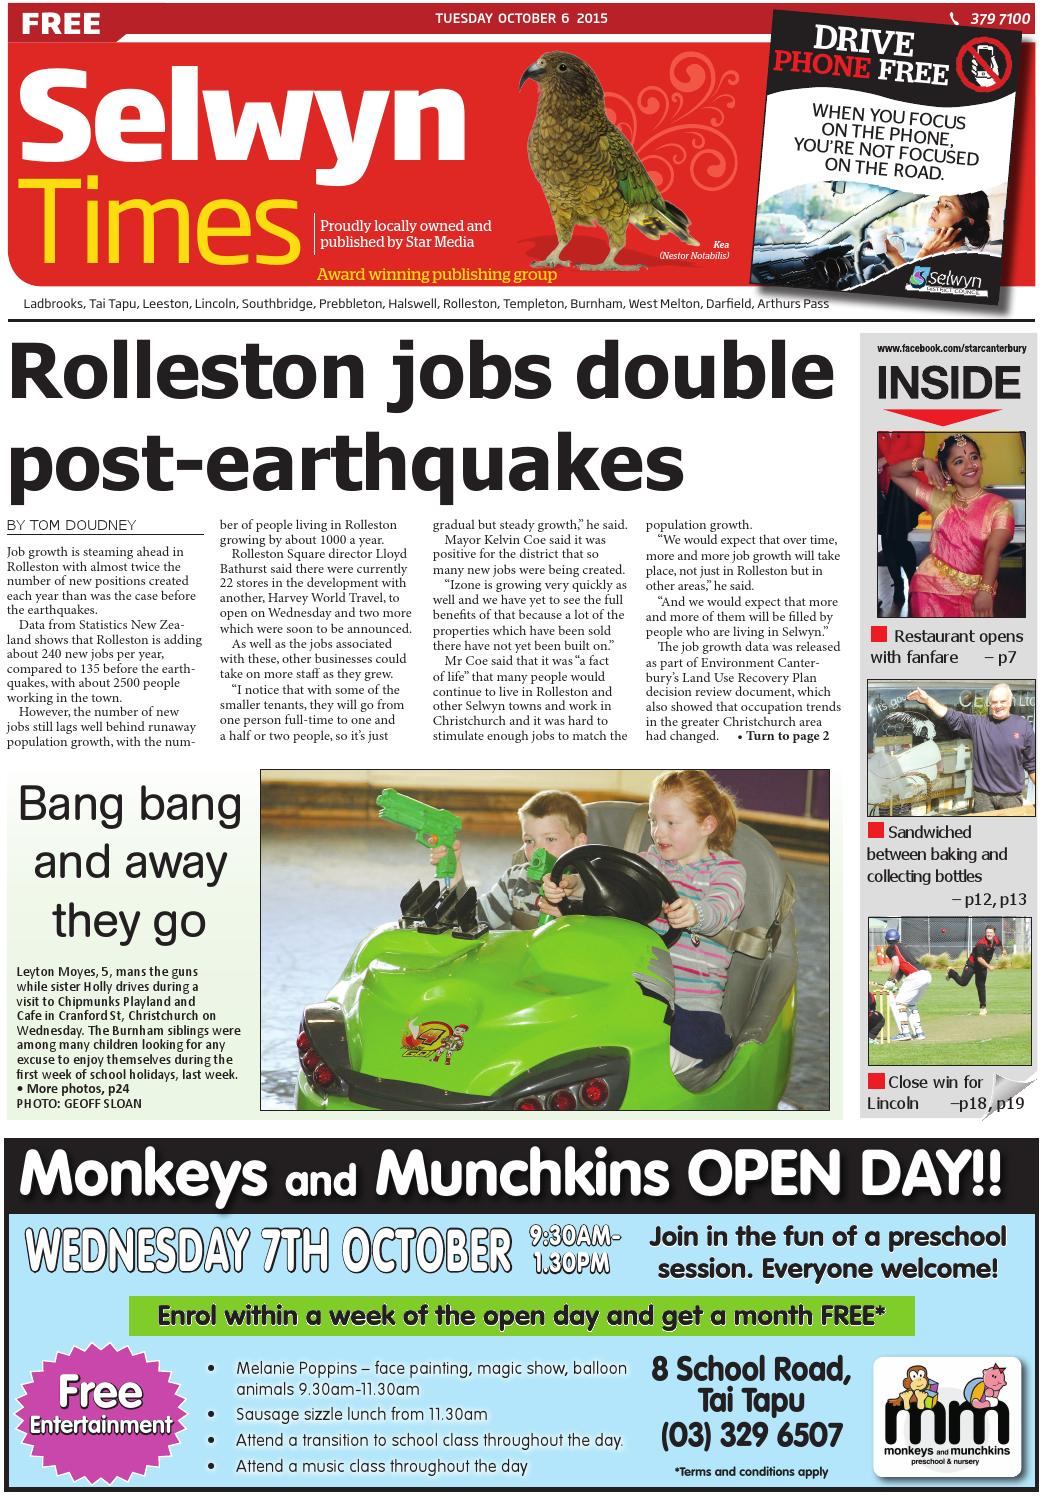 Selwyn Times 06-10-15 by Local Newspapers - issuu